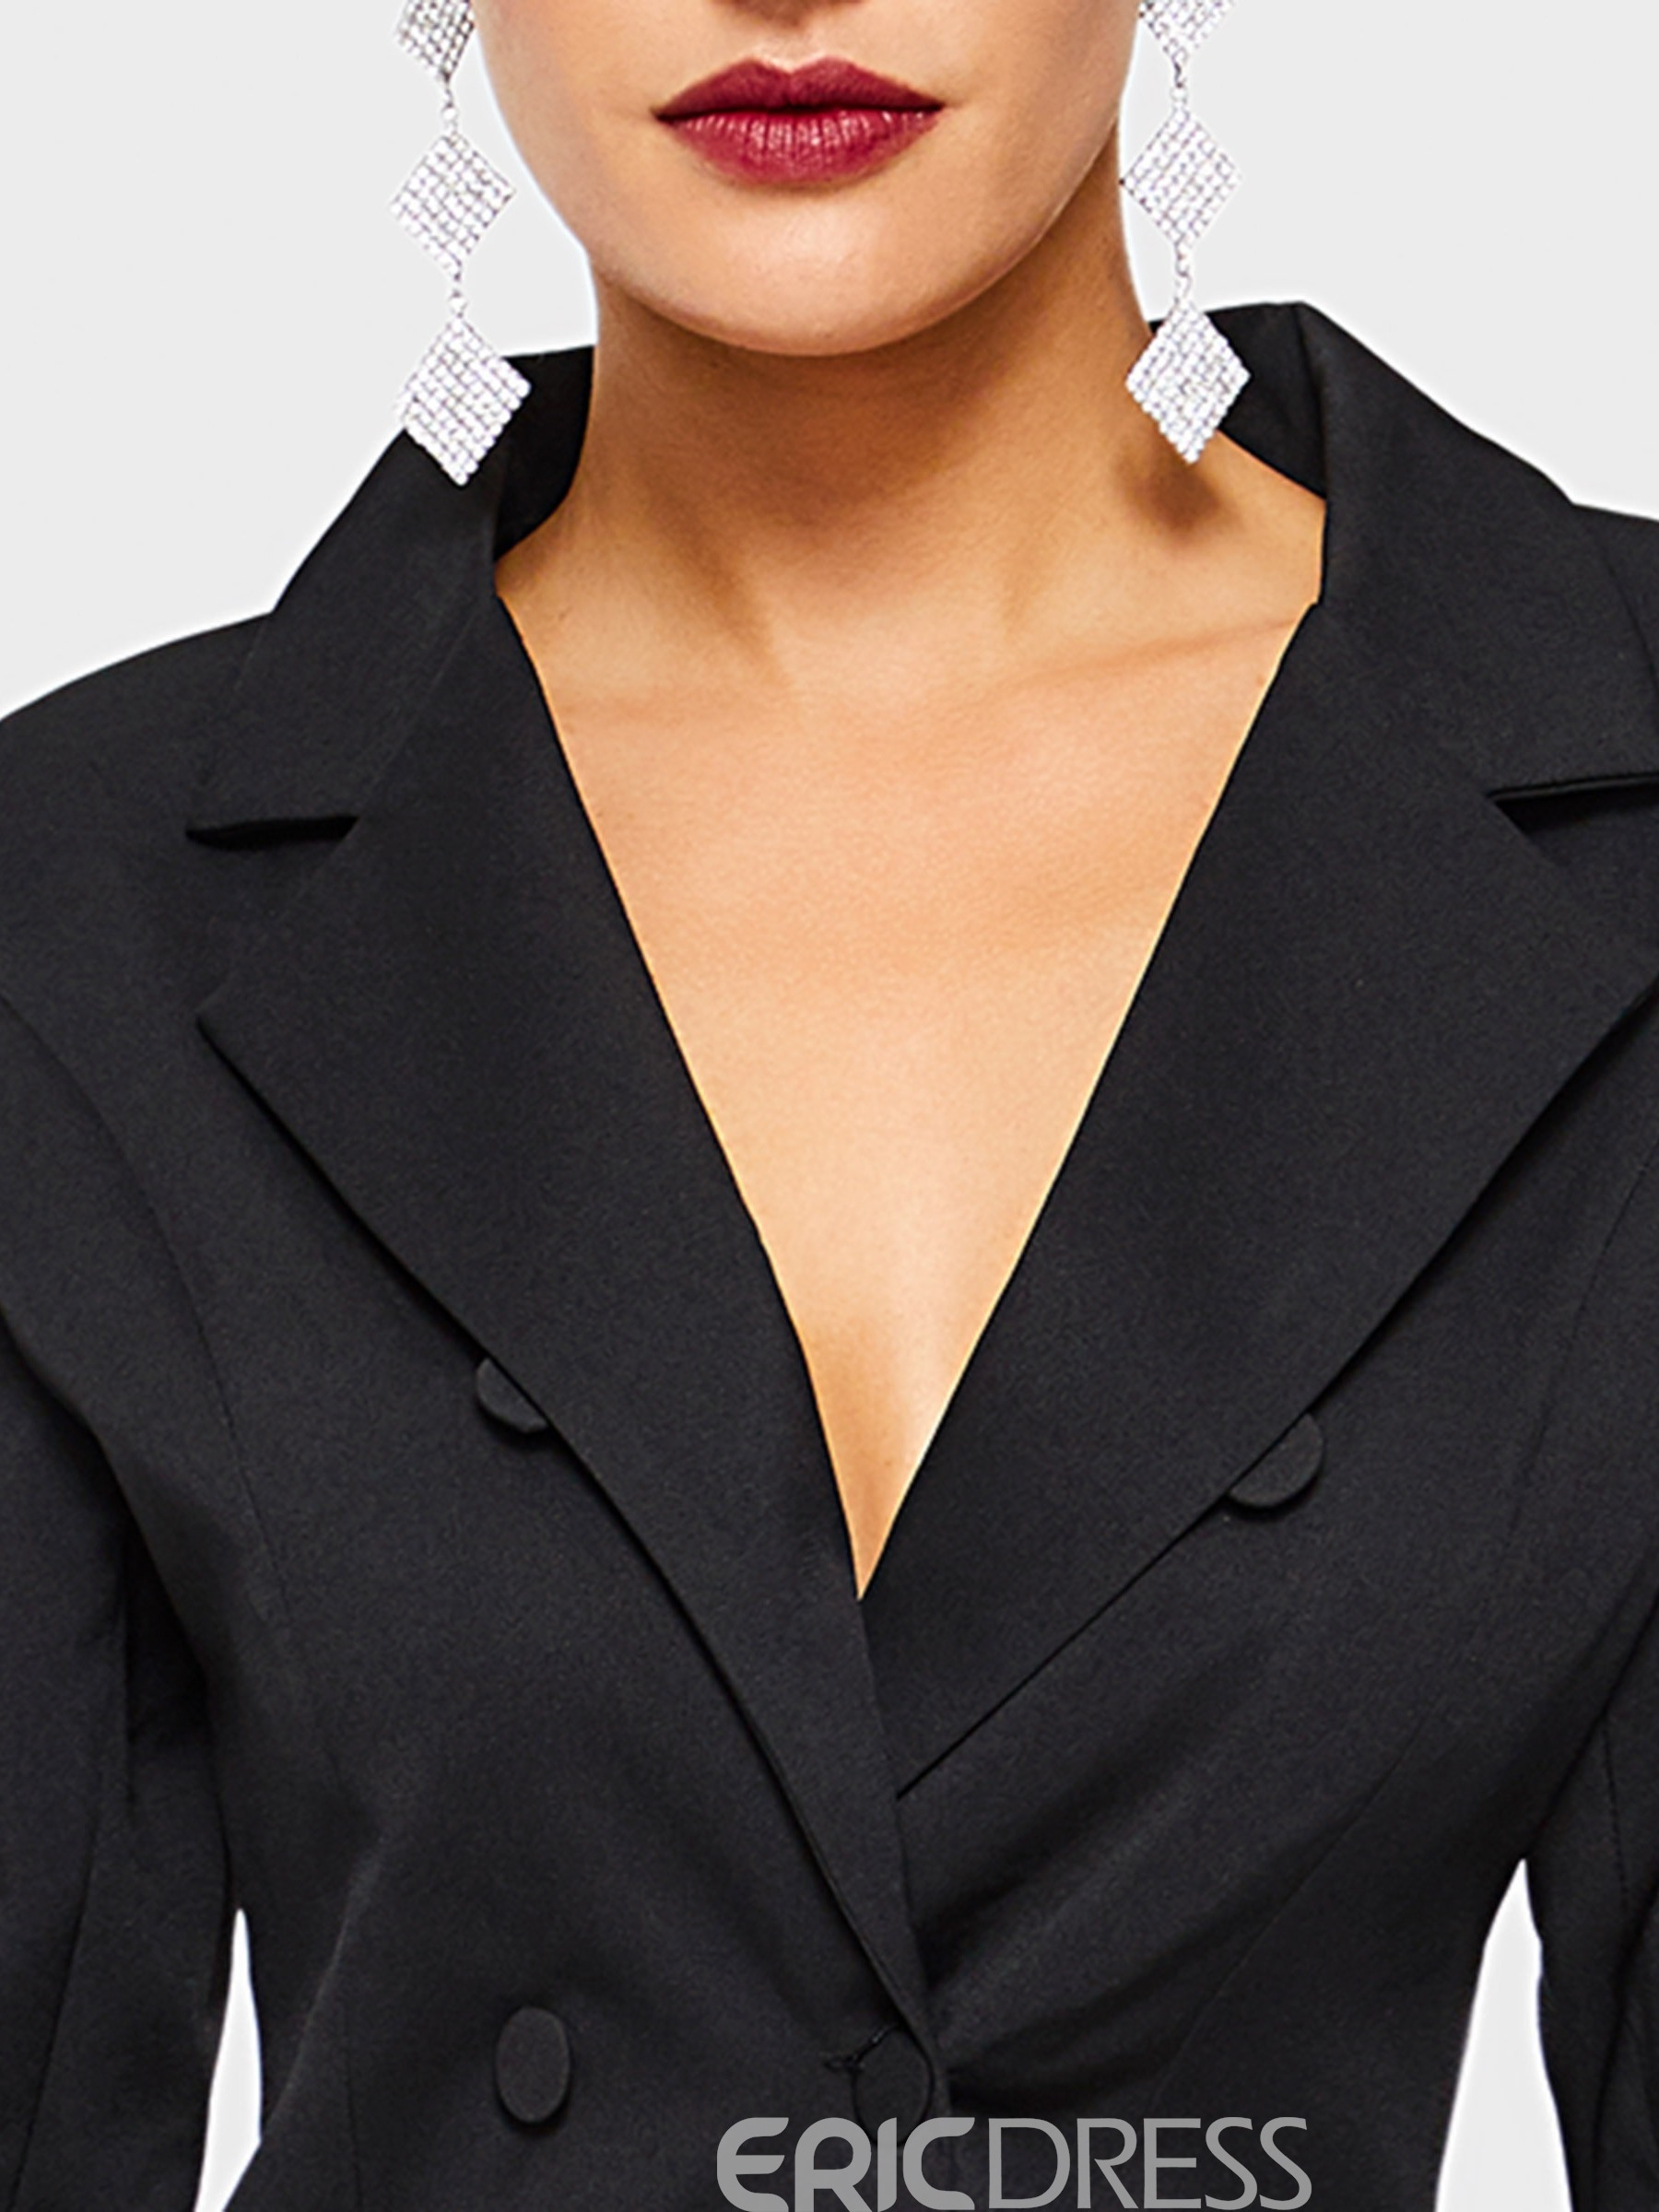 Ericdress Flare Sleeve Notched Lapel Plain Office Lady Black Blazer